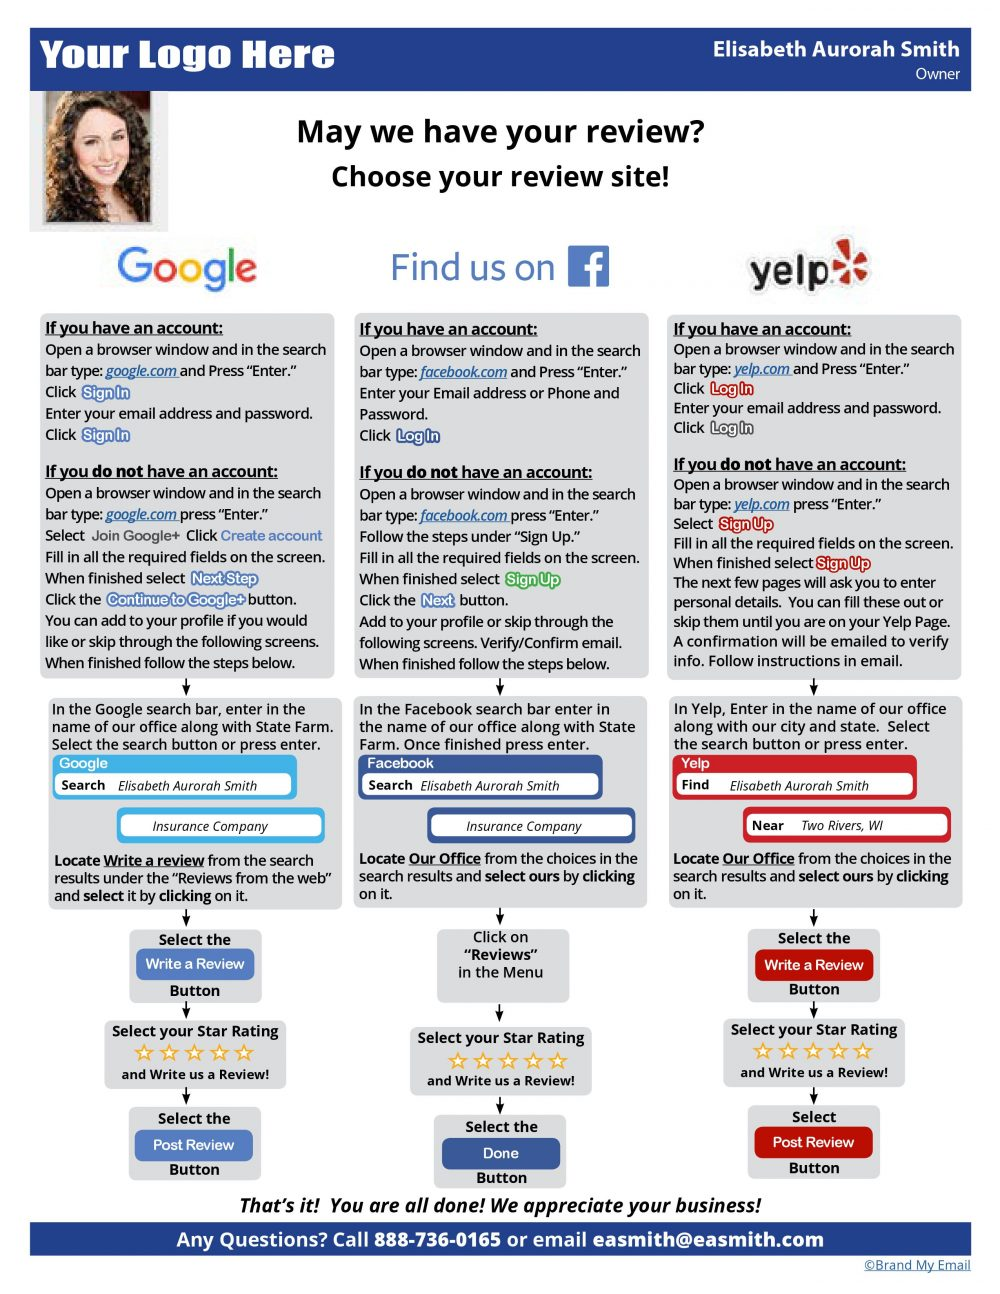 Google, Facebook, and Yelp Review Guides - Brand My Email